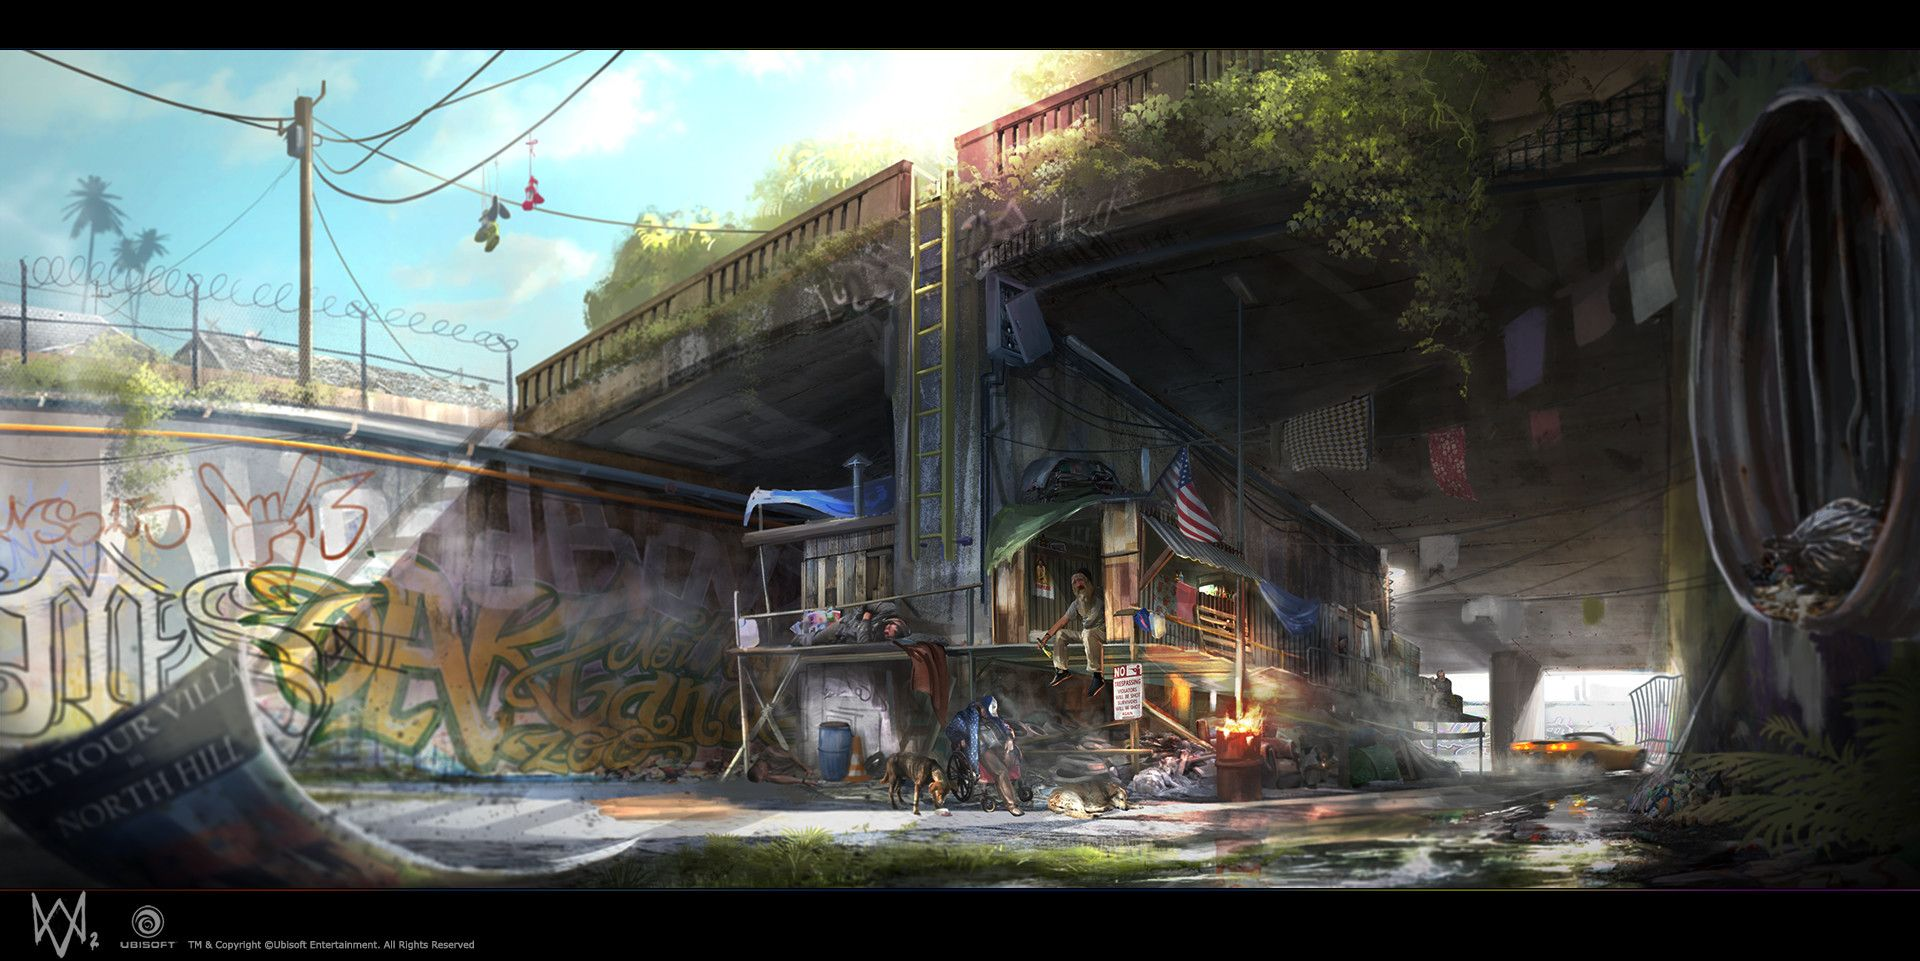 The Art Of Watch Dogs 2 World Of Darkness Art Game Concept Art